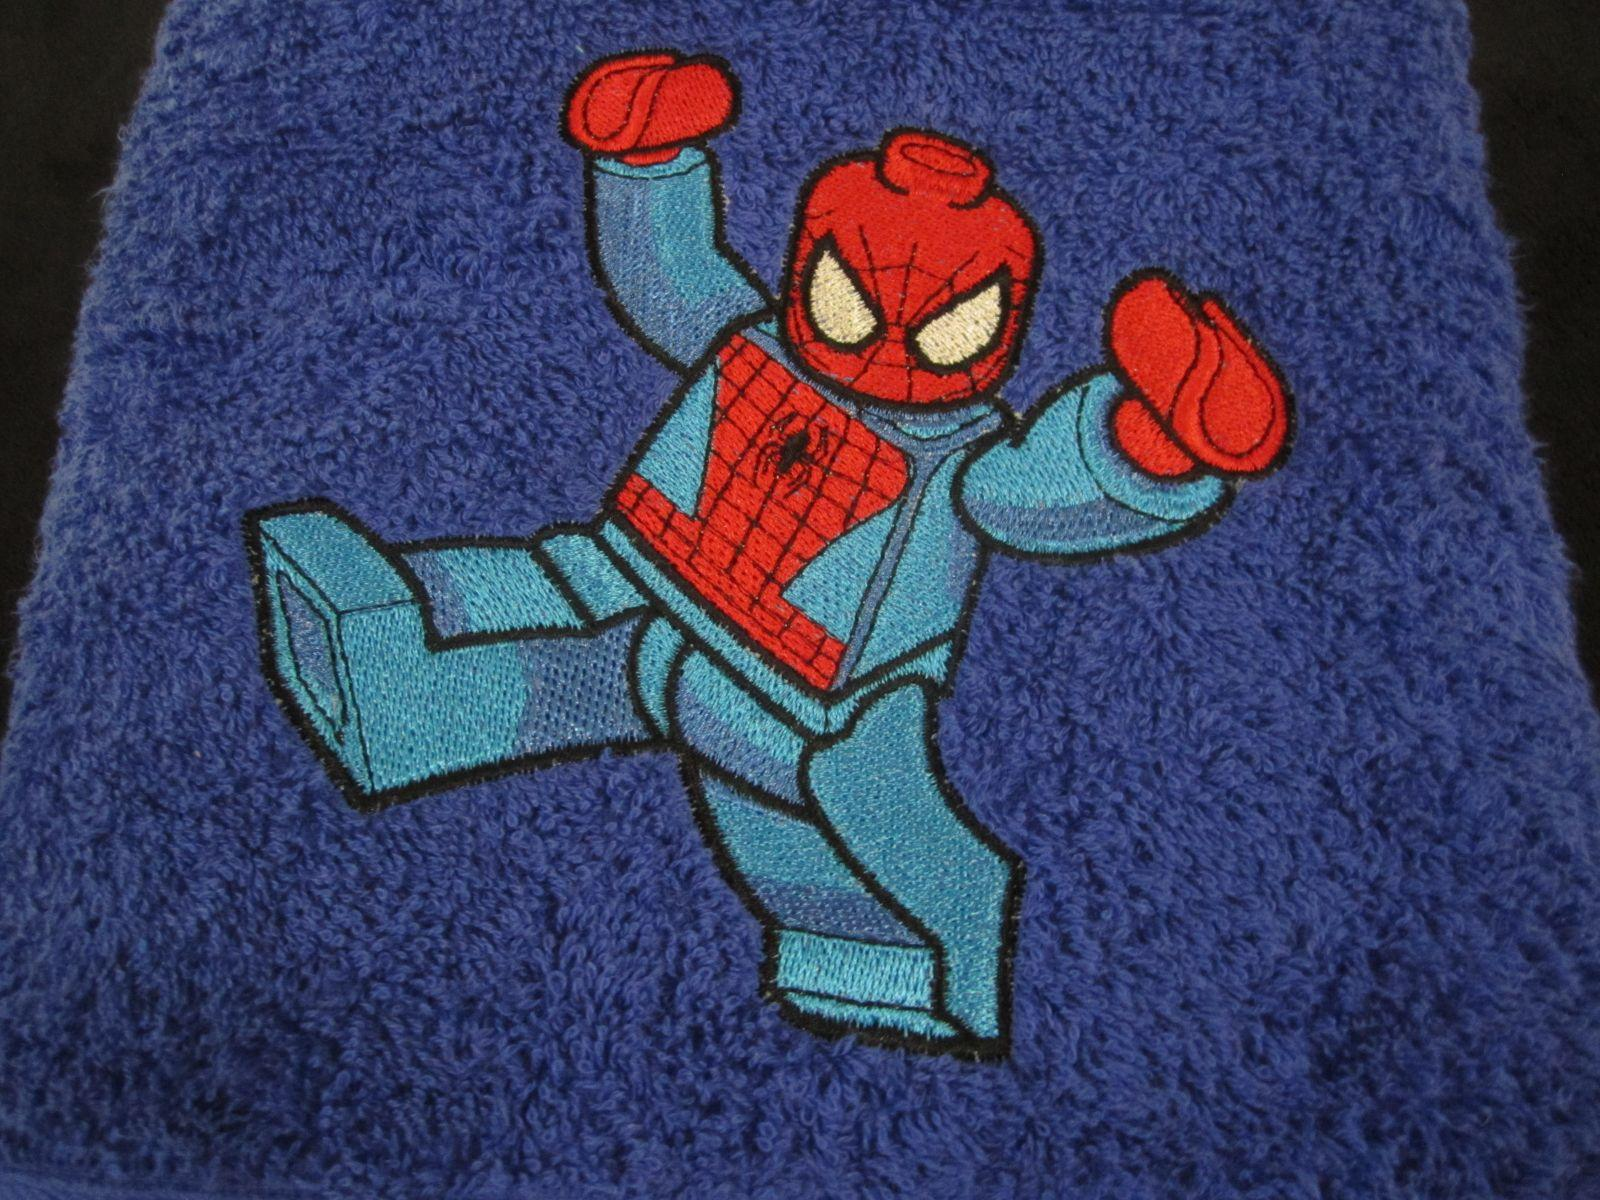 Towel with Spiderman Lego embroidery design